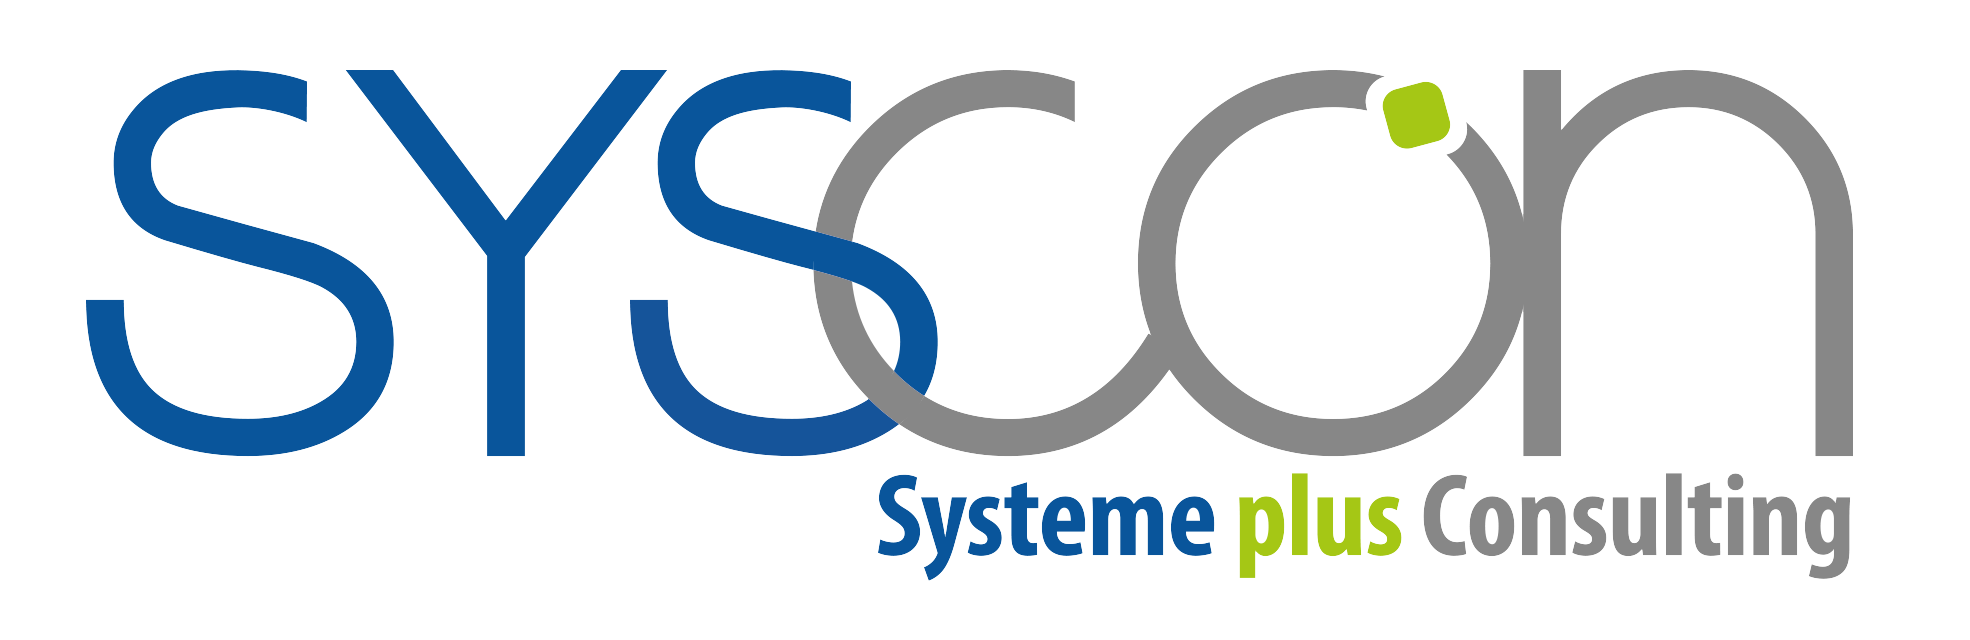 SYSCON GmbH Systeme plus Consulting